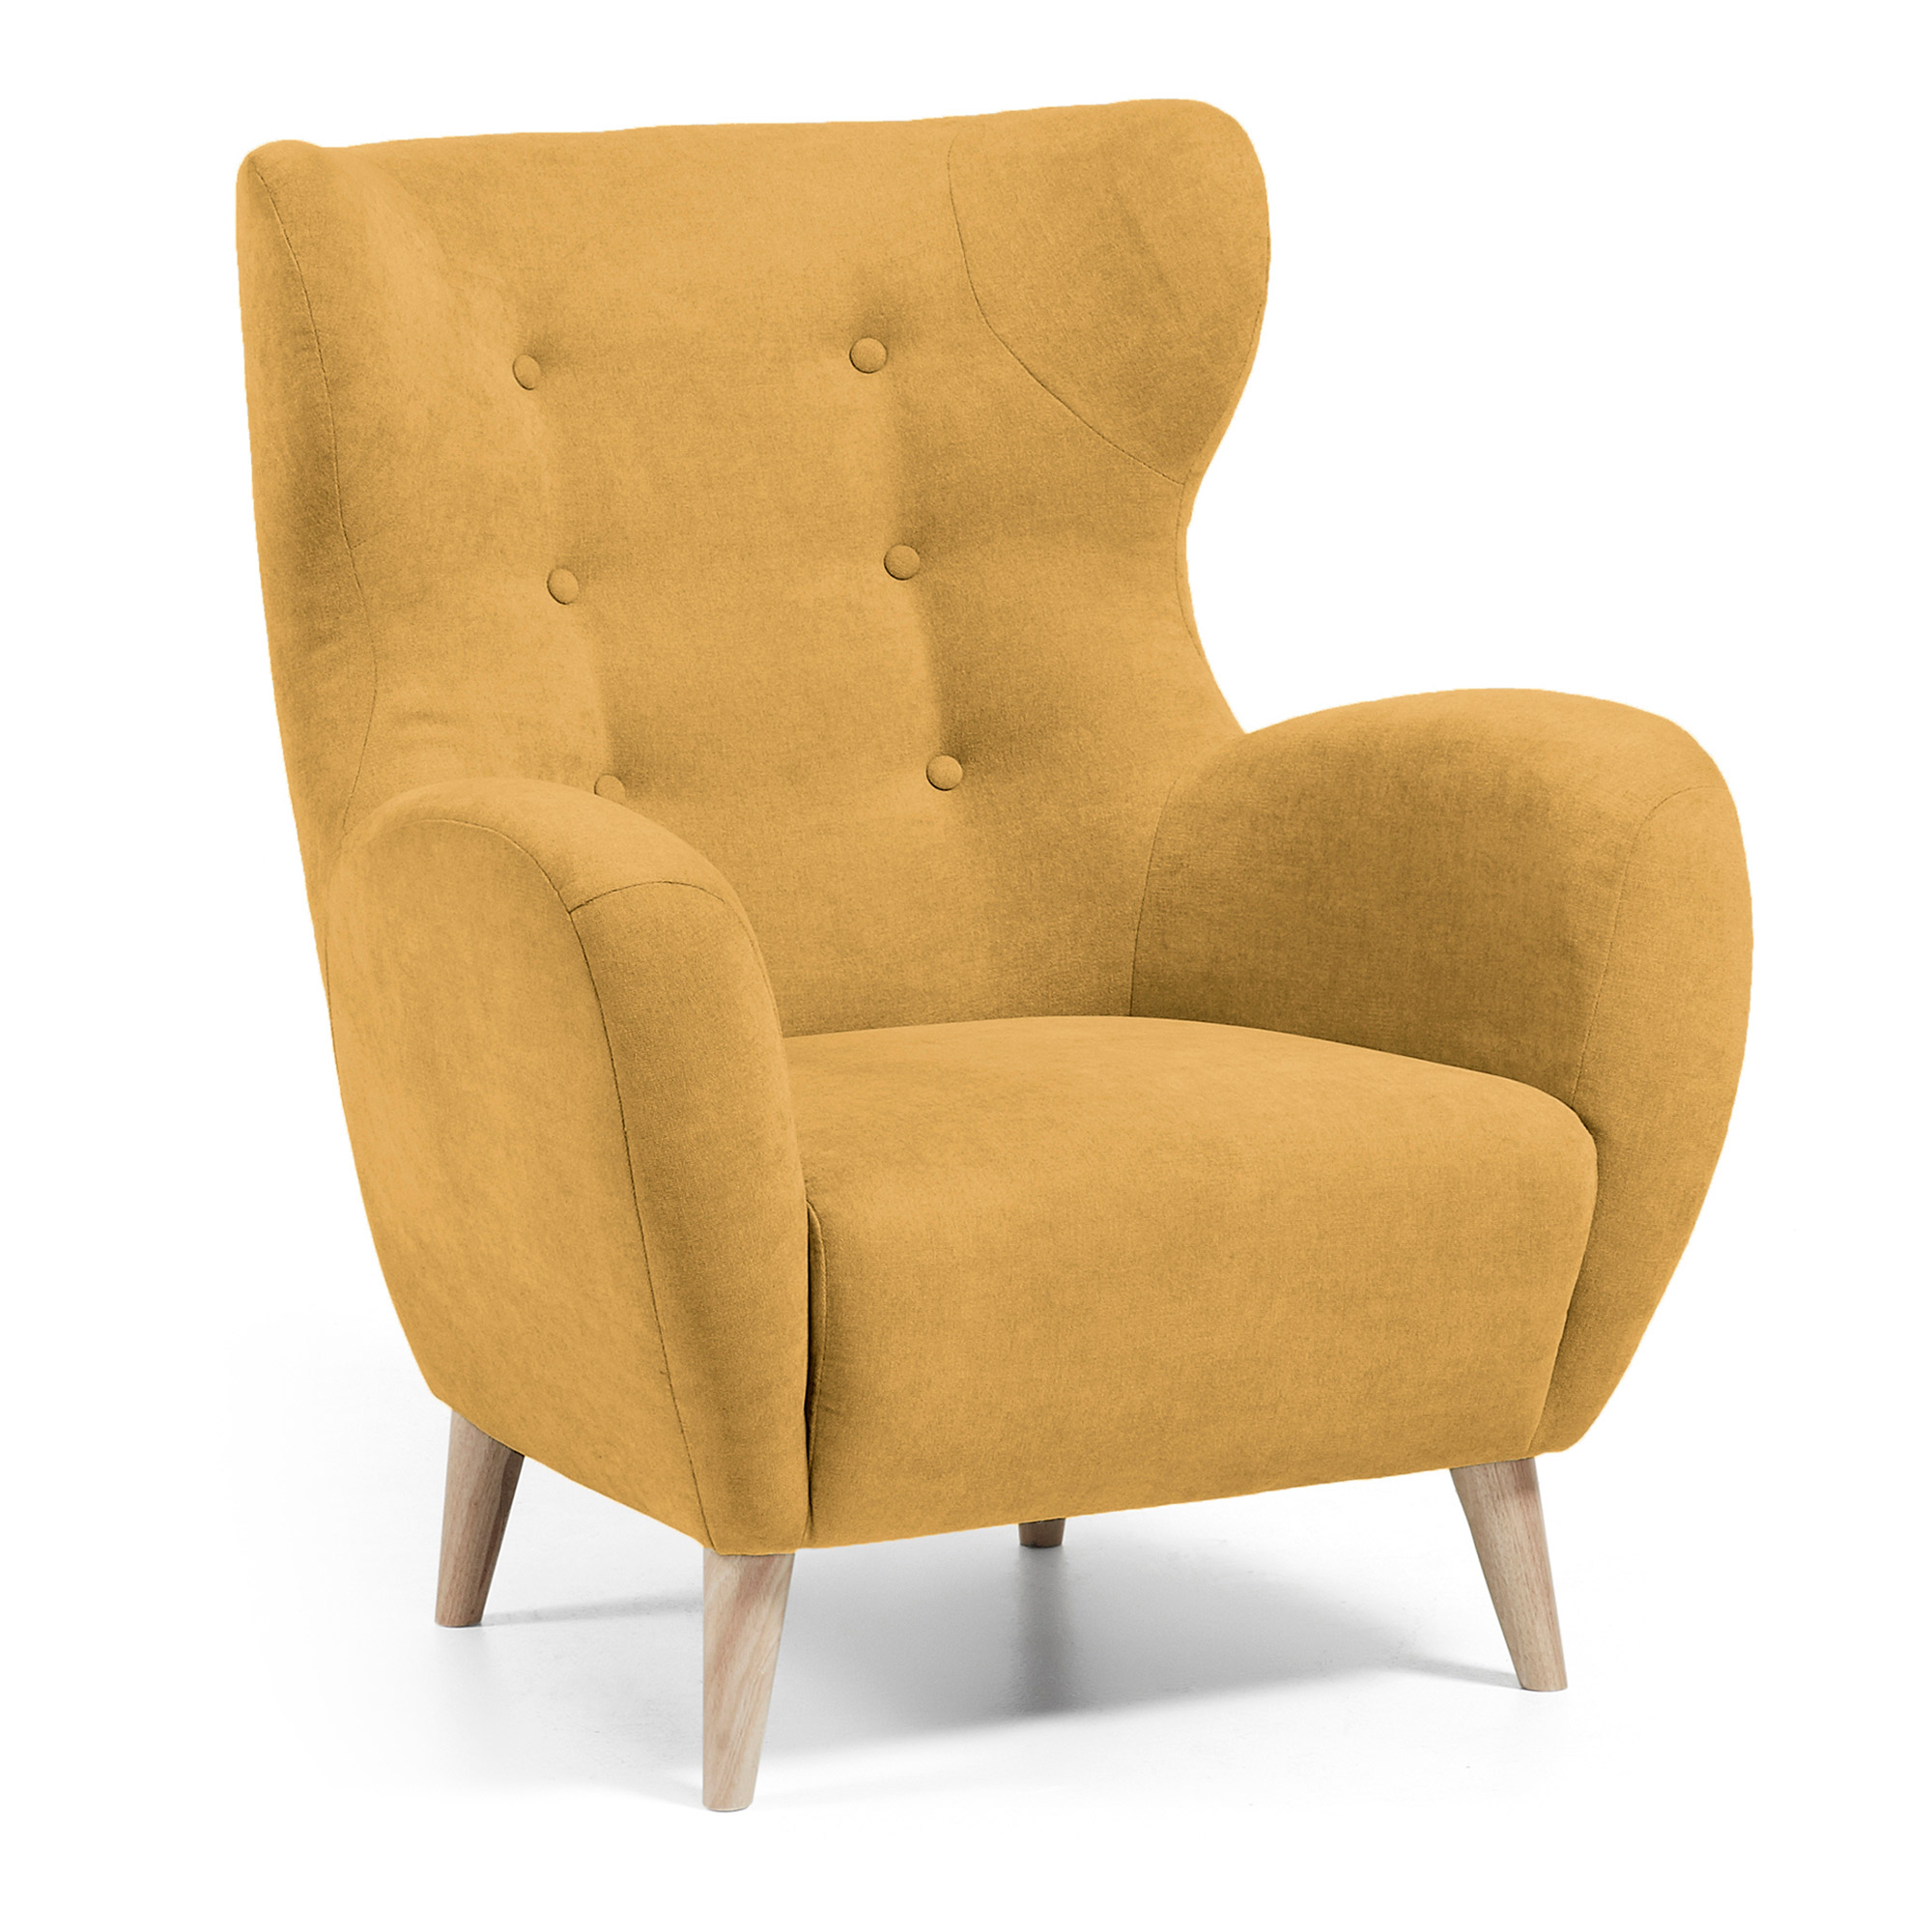 Kave home - fauteuil patio moutarde